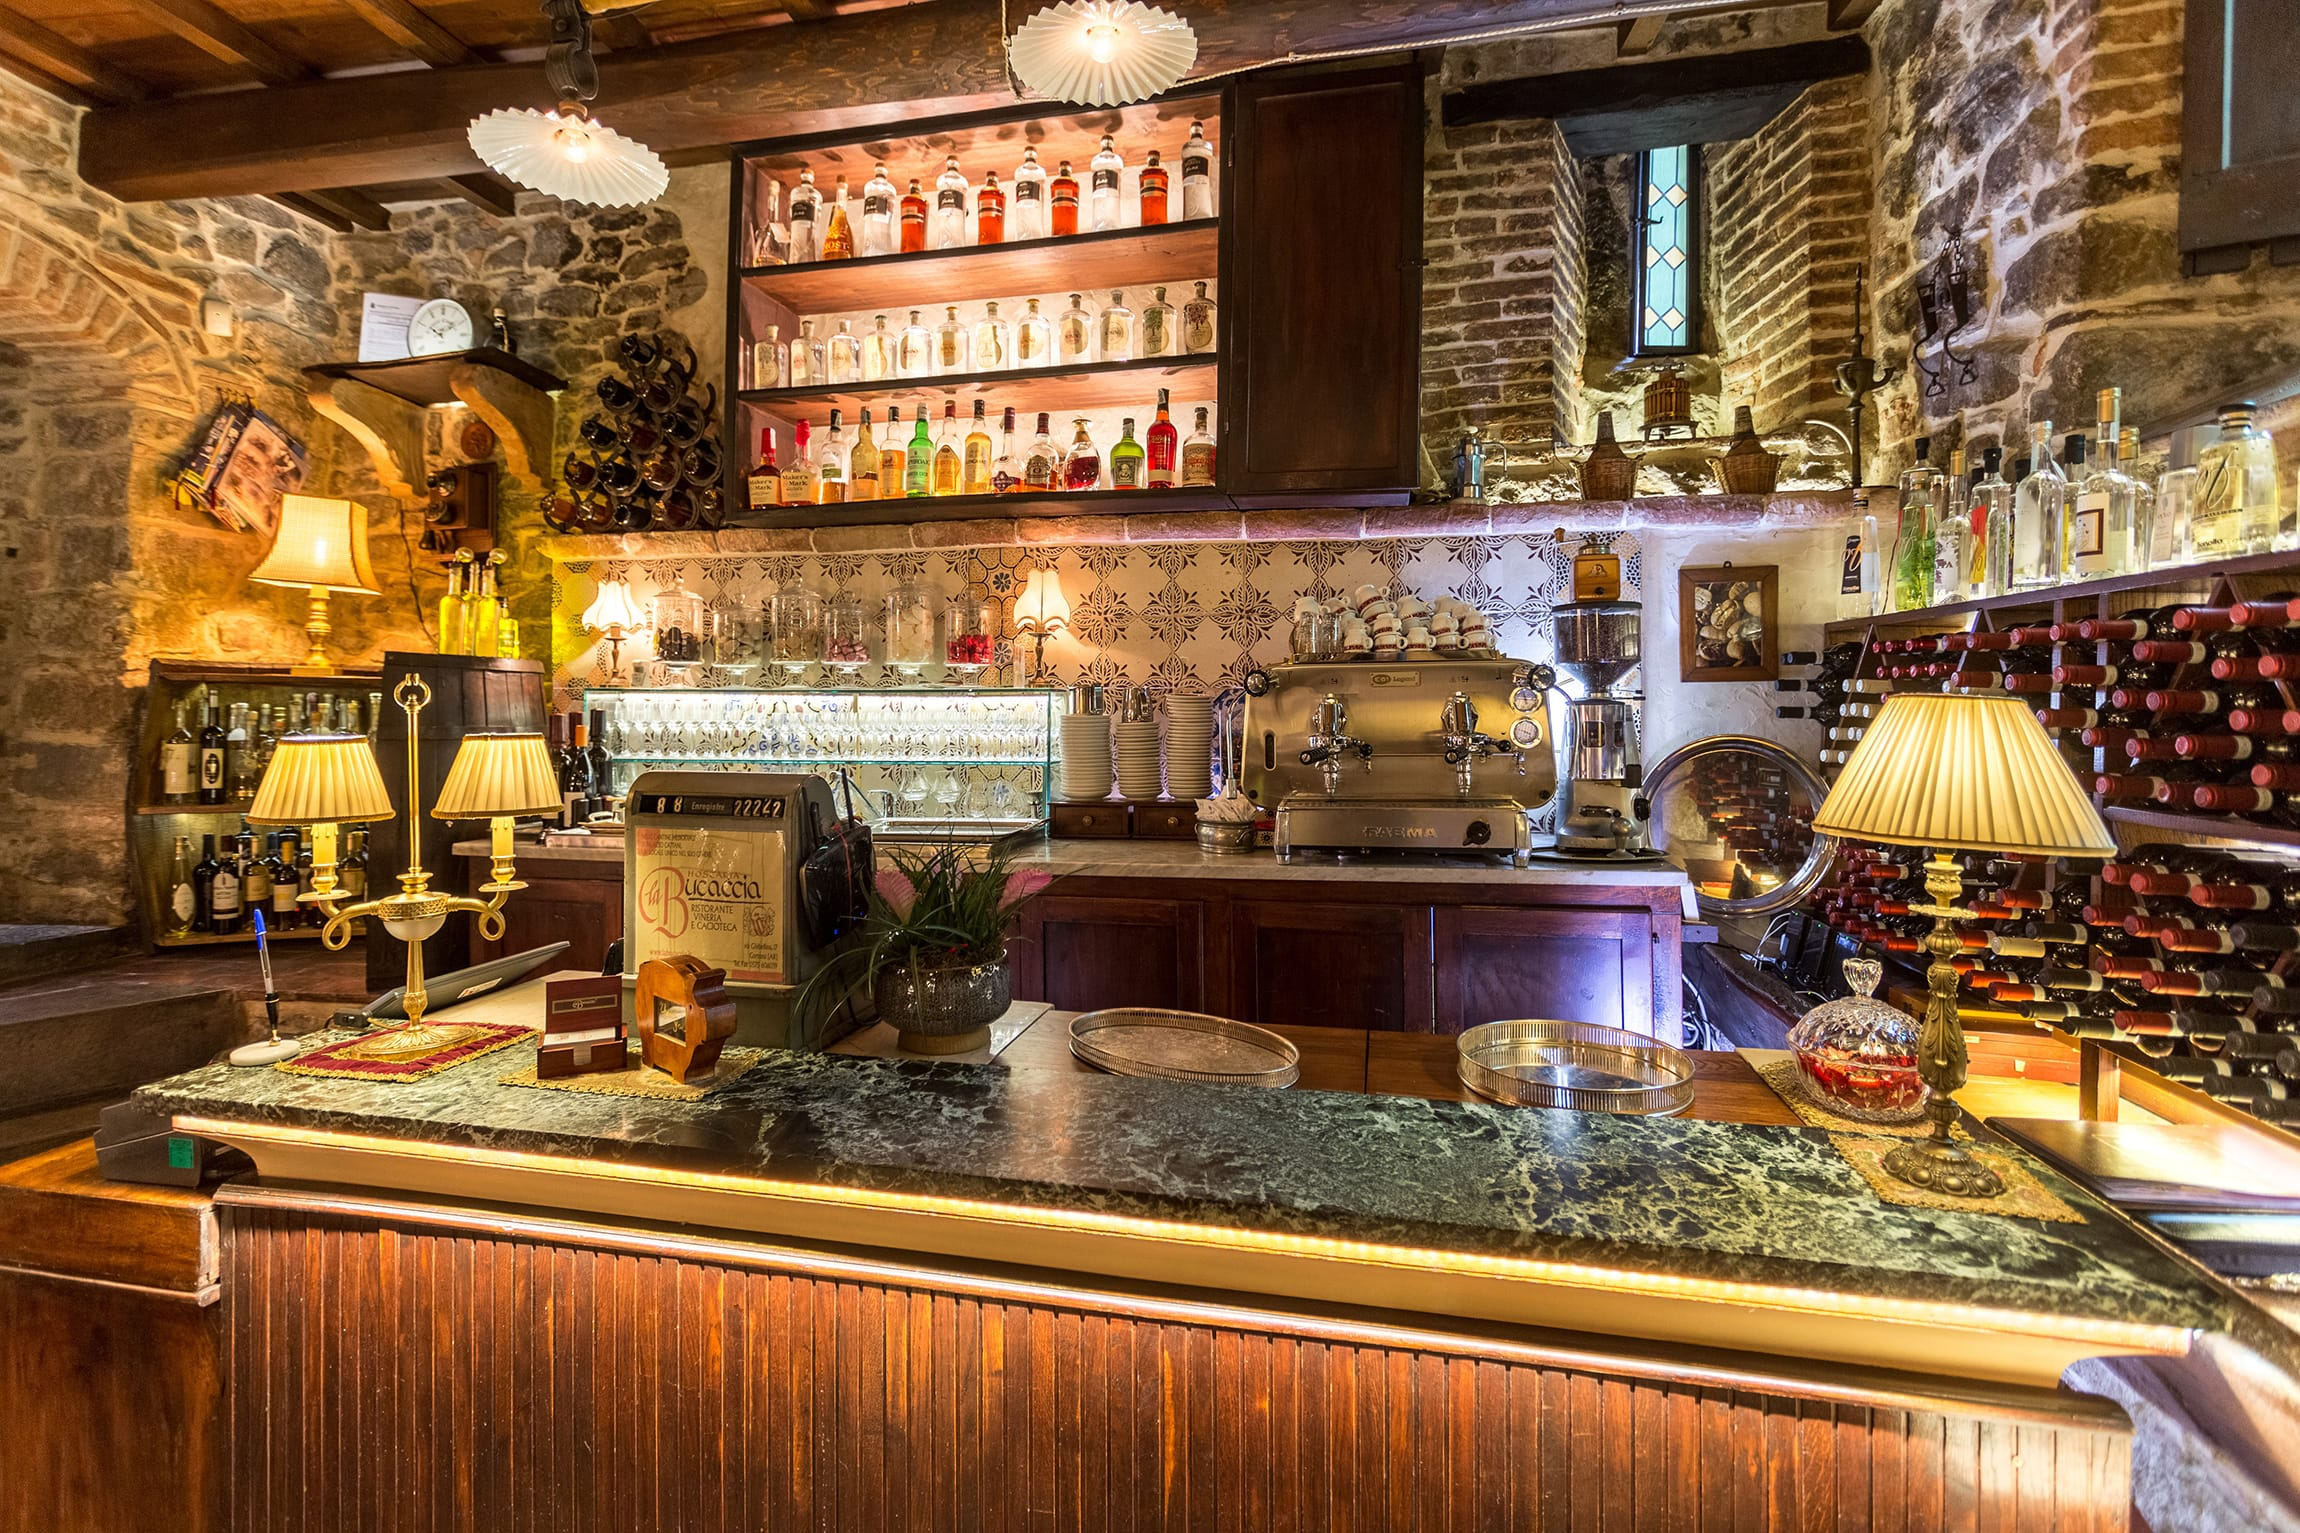 Contacts for information and booking – Restaurant La Bucaccia Cortona